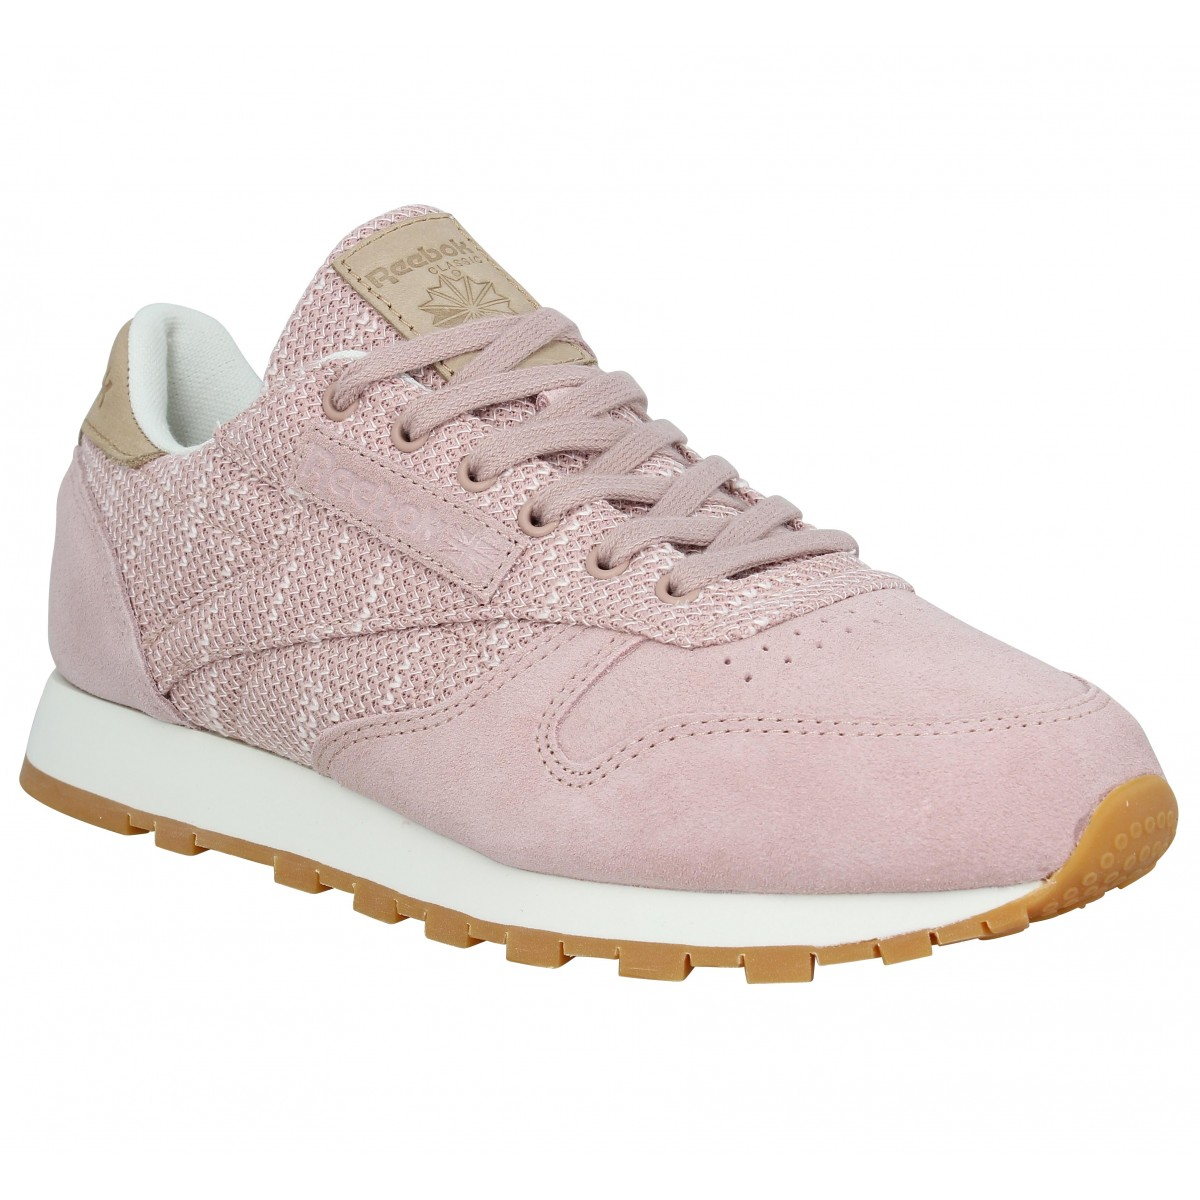 ebb6a7c8daa83 Baskets REEBOK Classic Leather velours toile Femme Rose